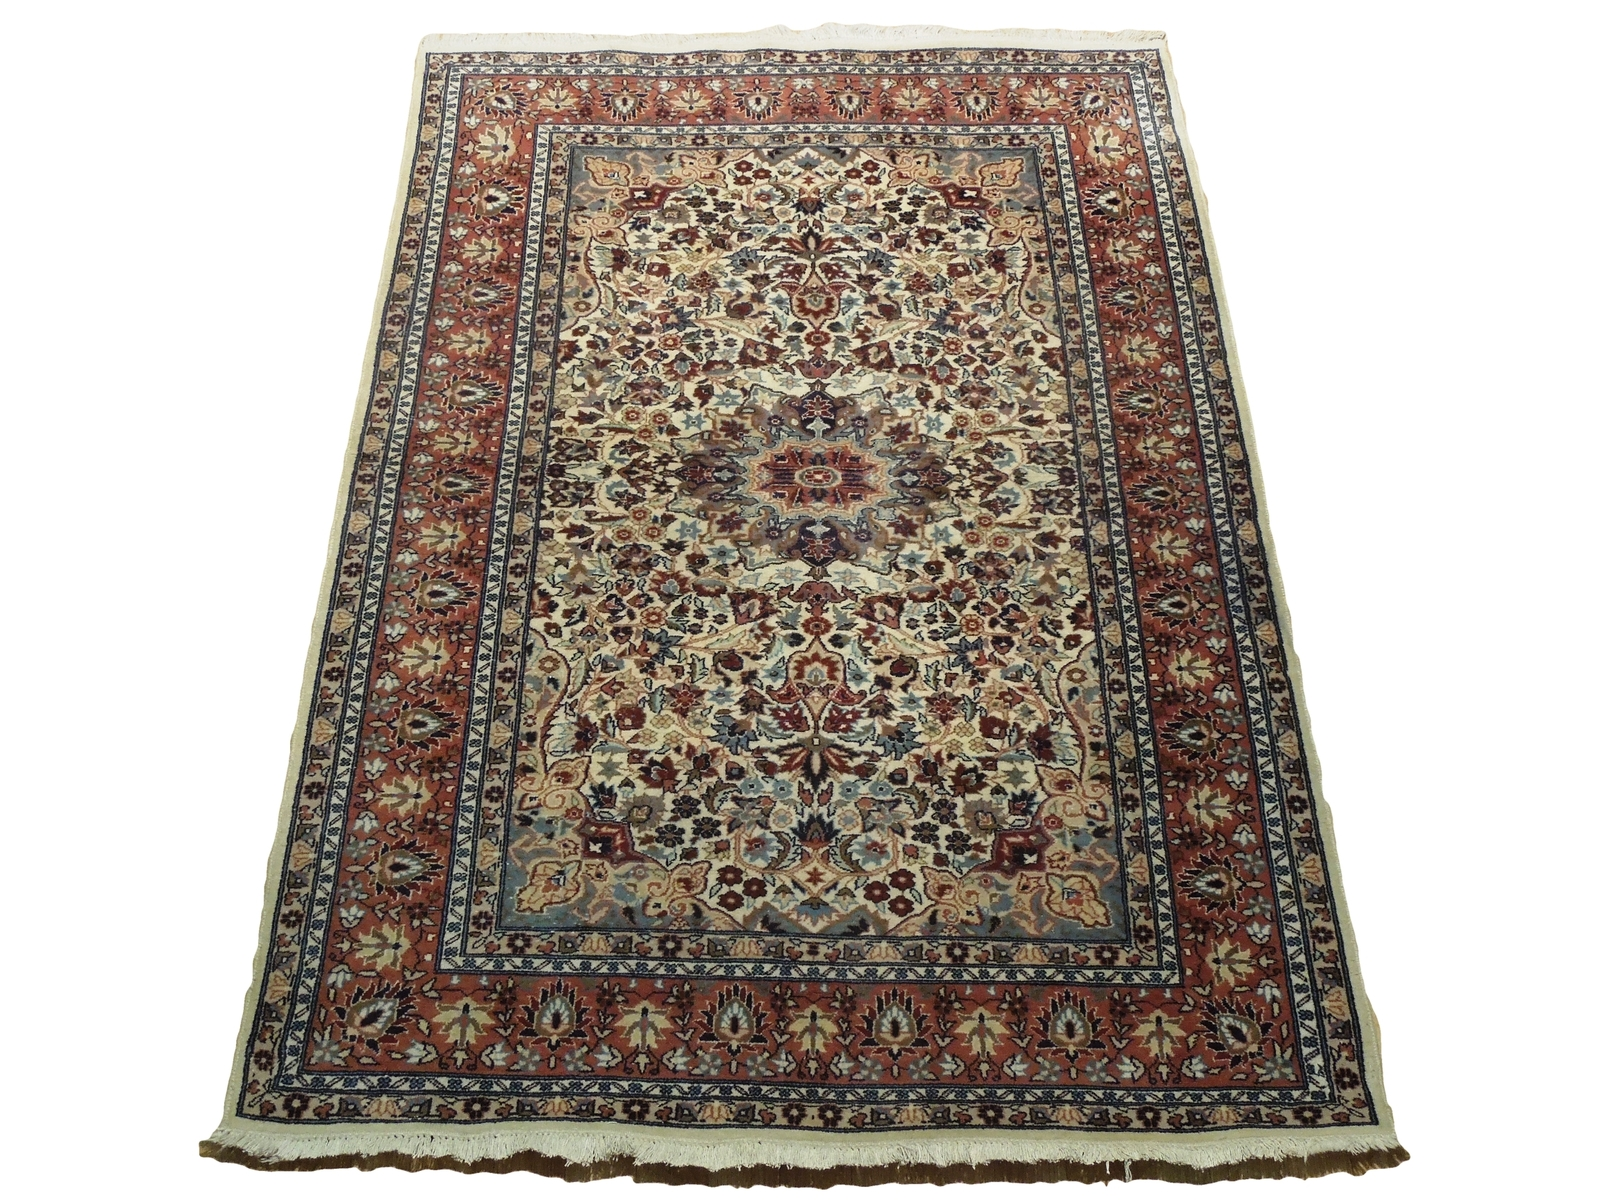 Ivory Wool Carpet 5 x 7 Fine Quality Reproduction Traditional Handmade Rug